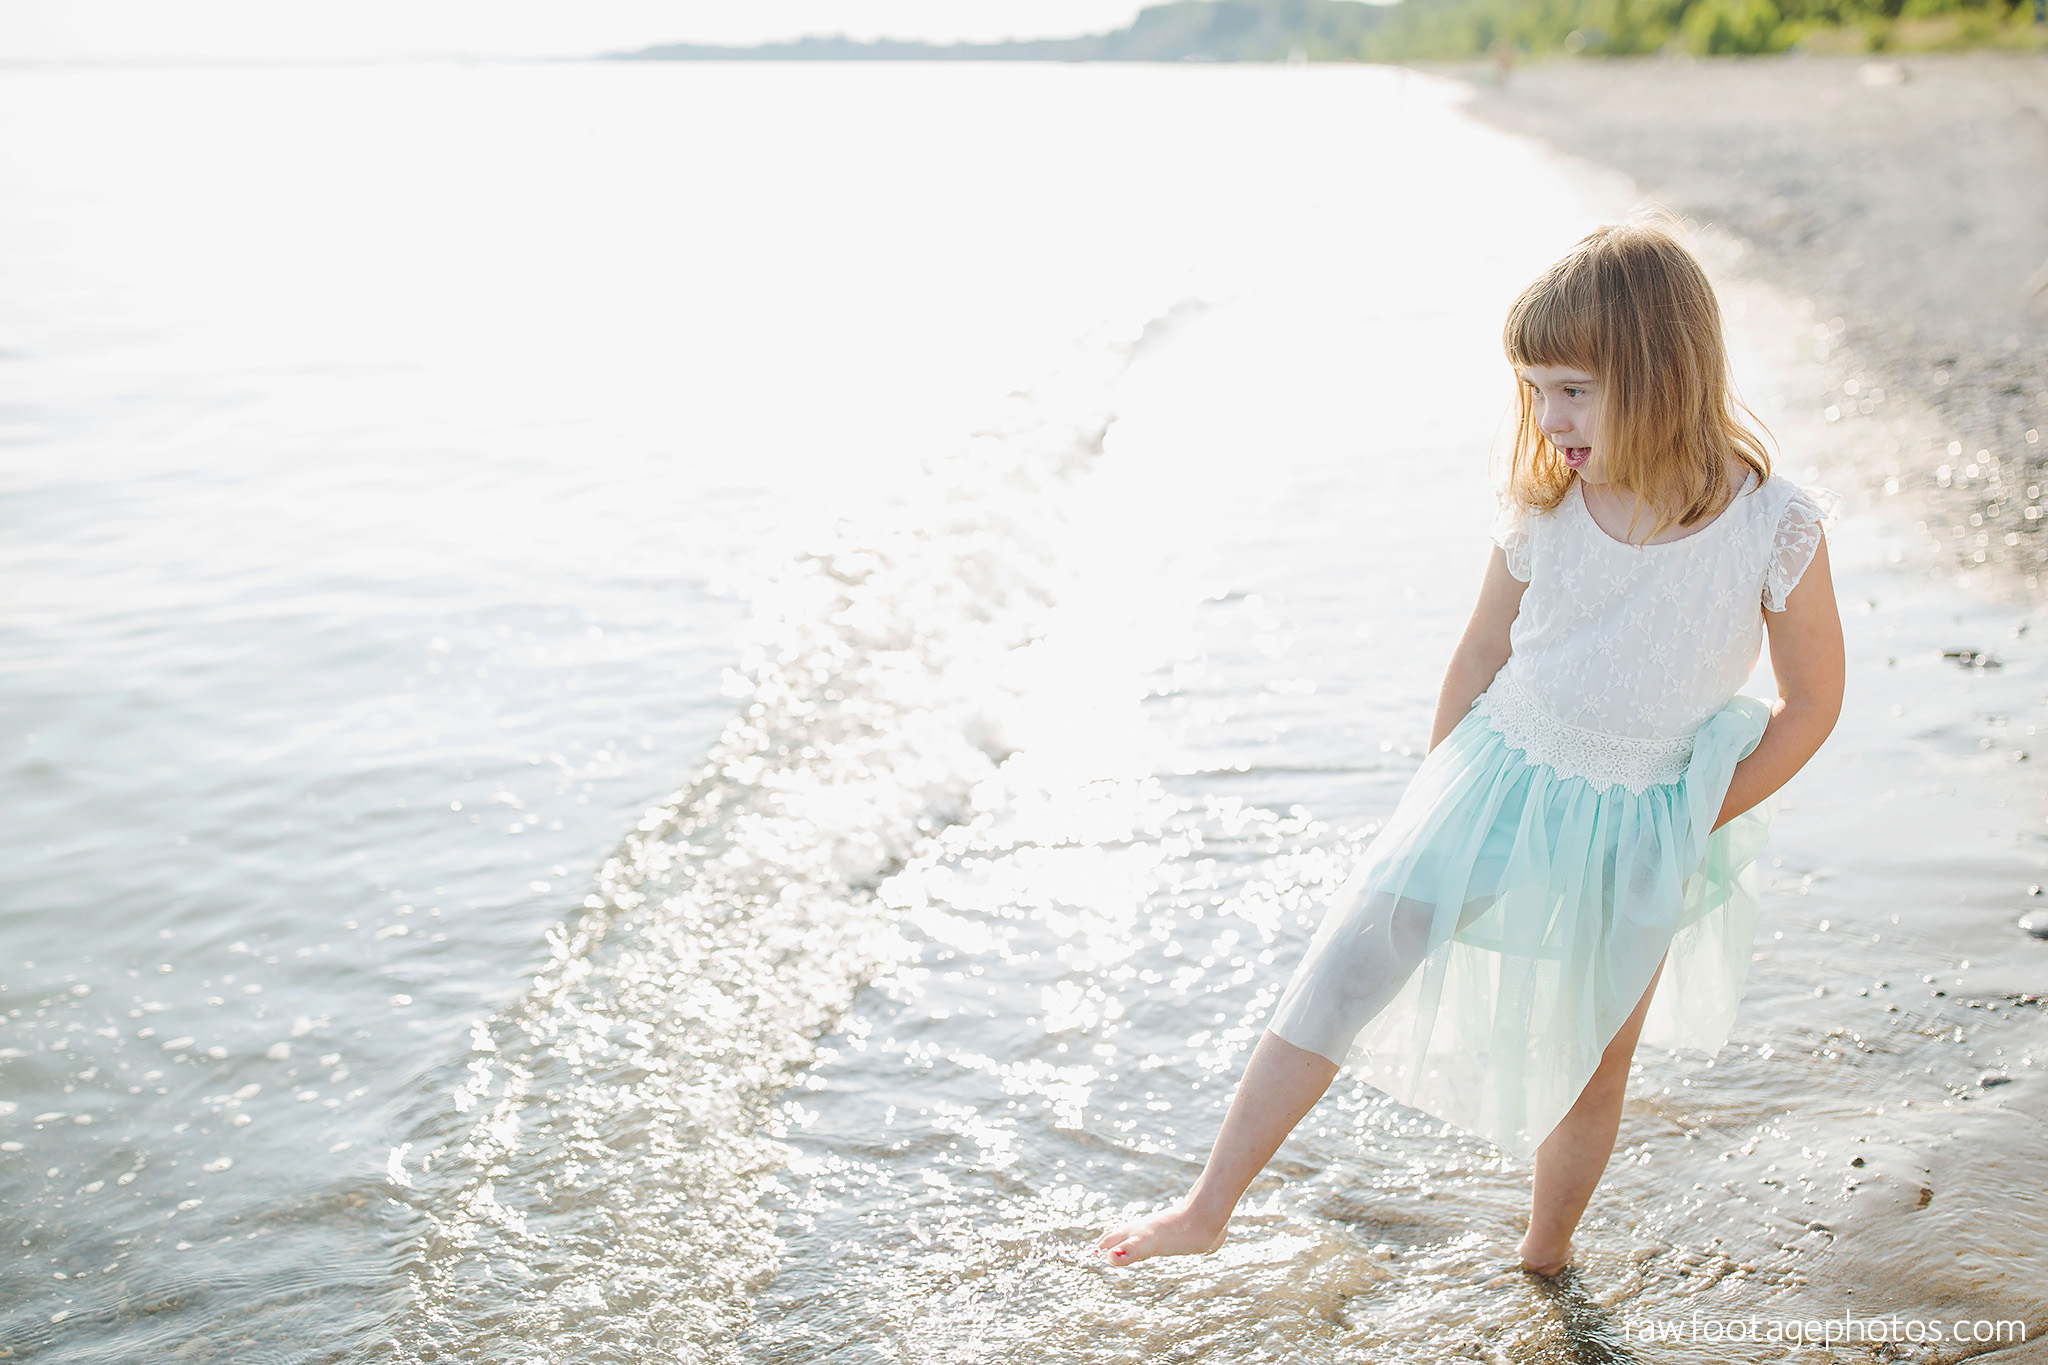 london_ontario_family_photographer-beach_minis-port_stanley_beach-raw_footage_photography025.jpg